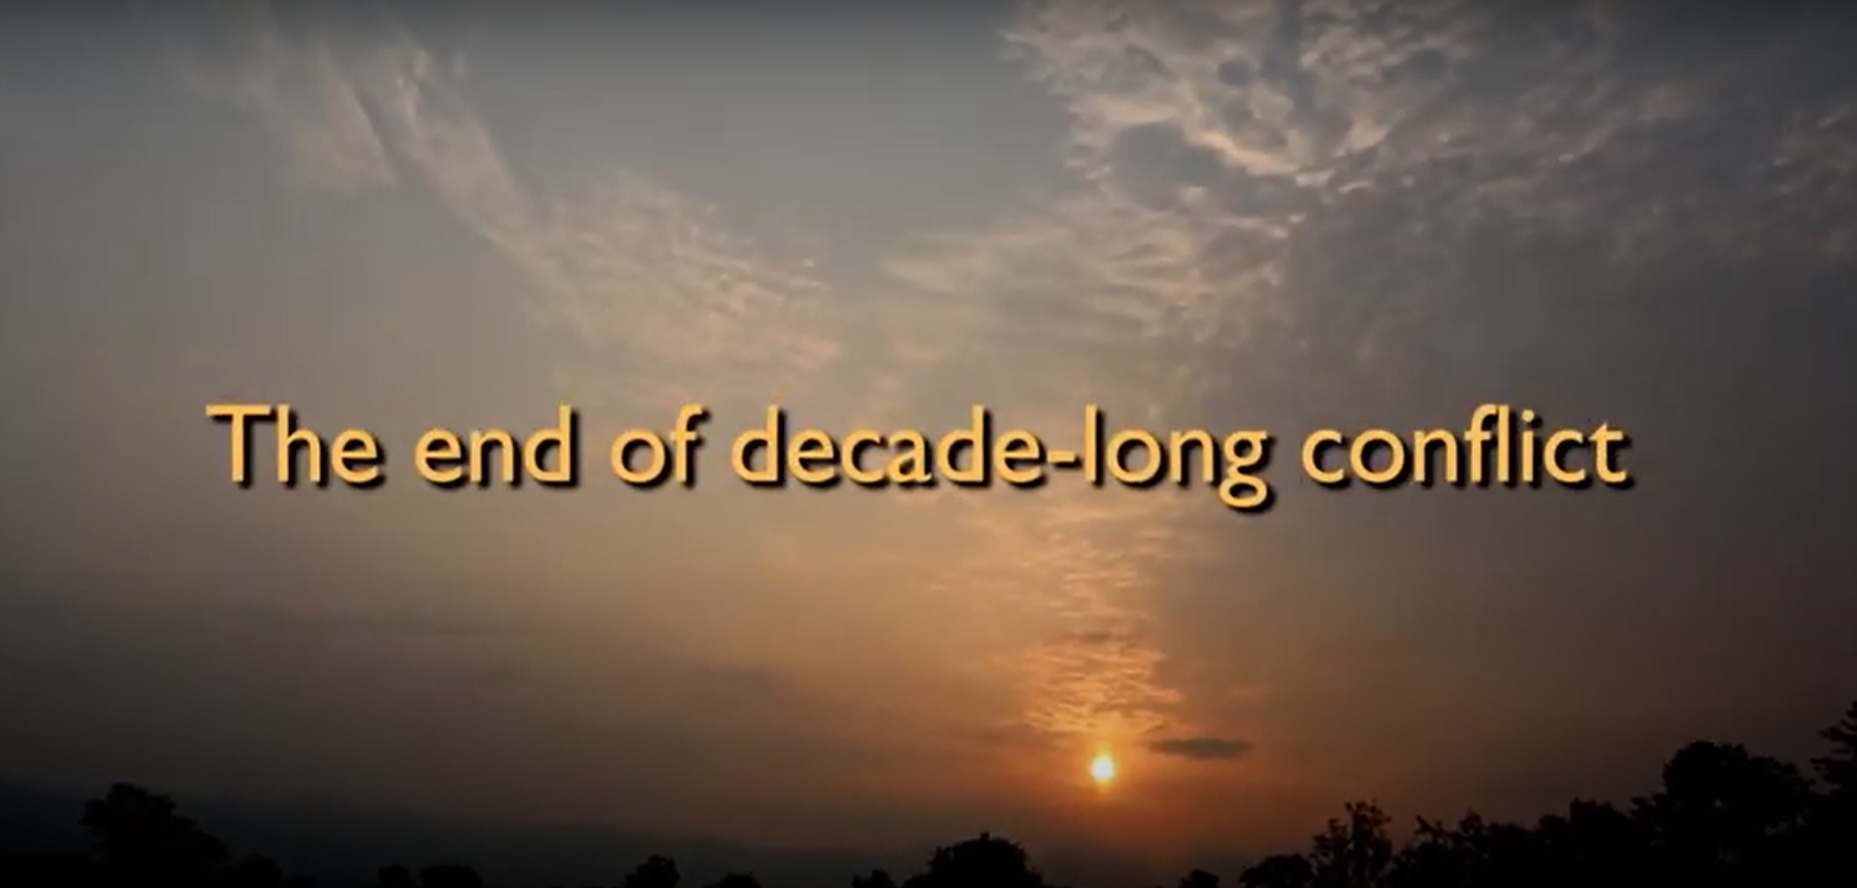 The End of Decade Long Conflict